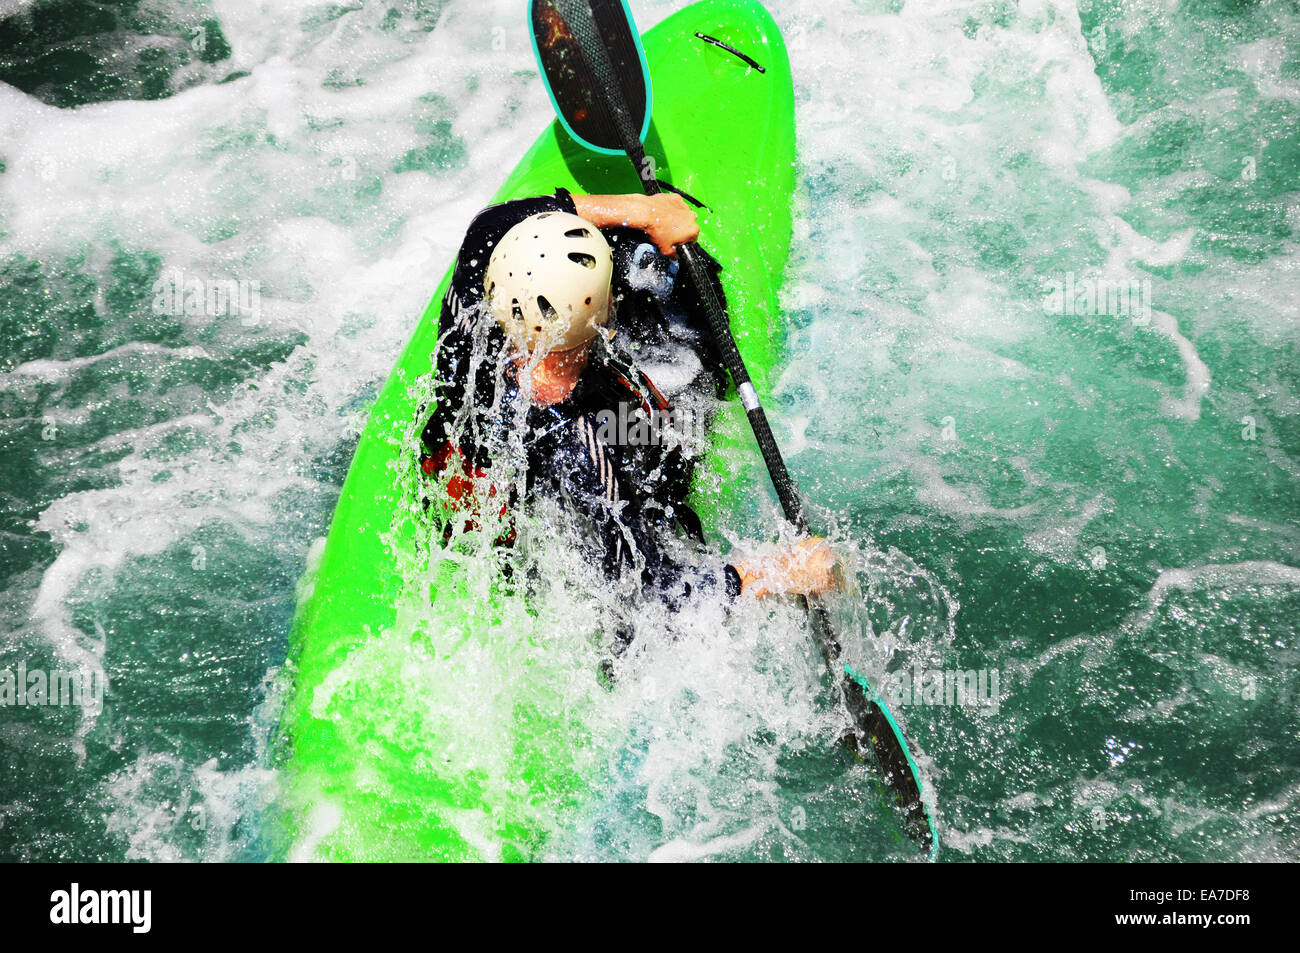 Kayaking as extreme and fun sport. - Stock Image